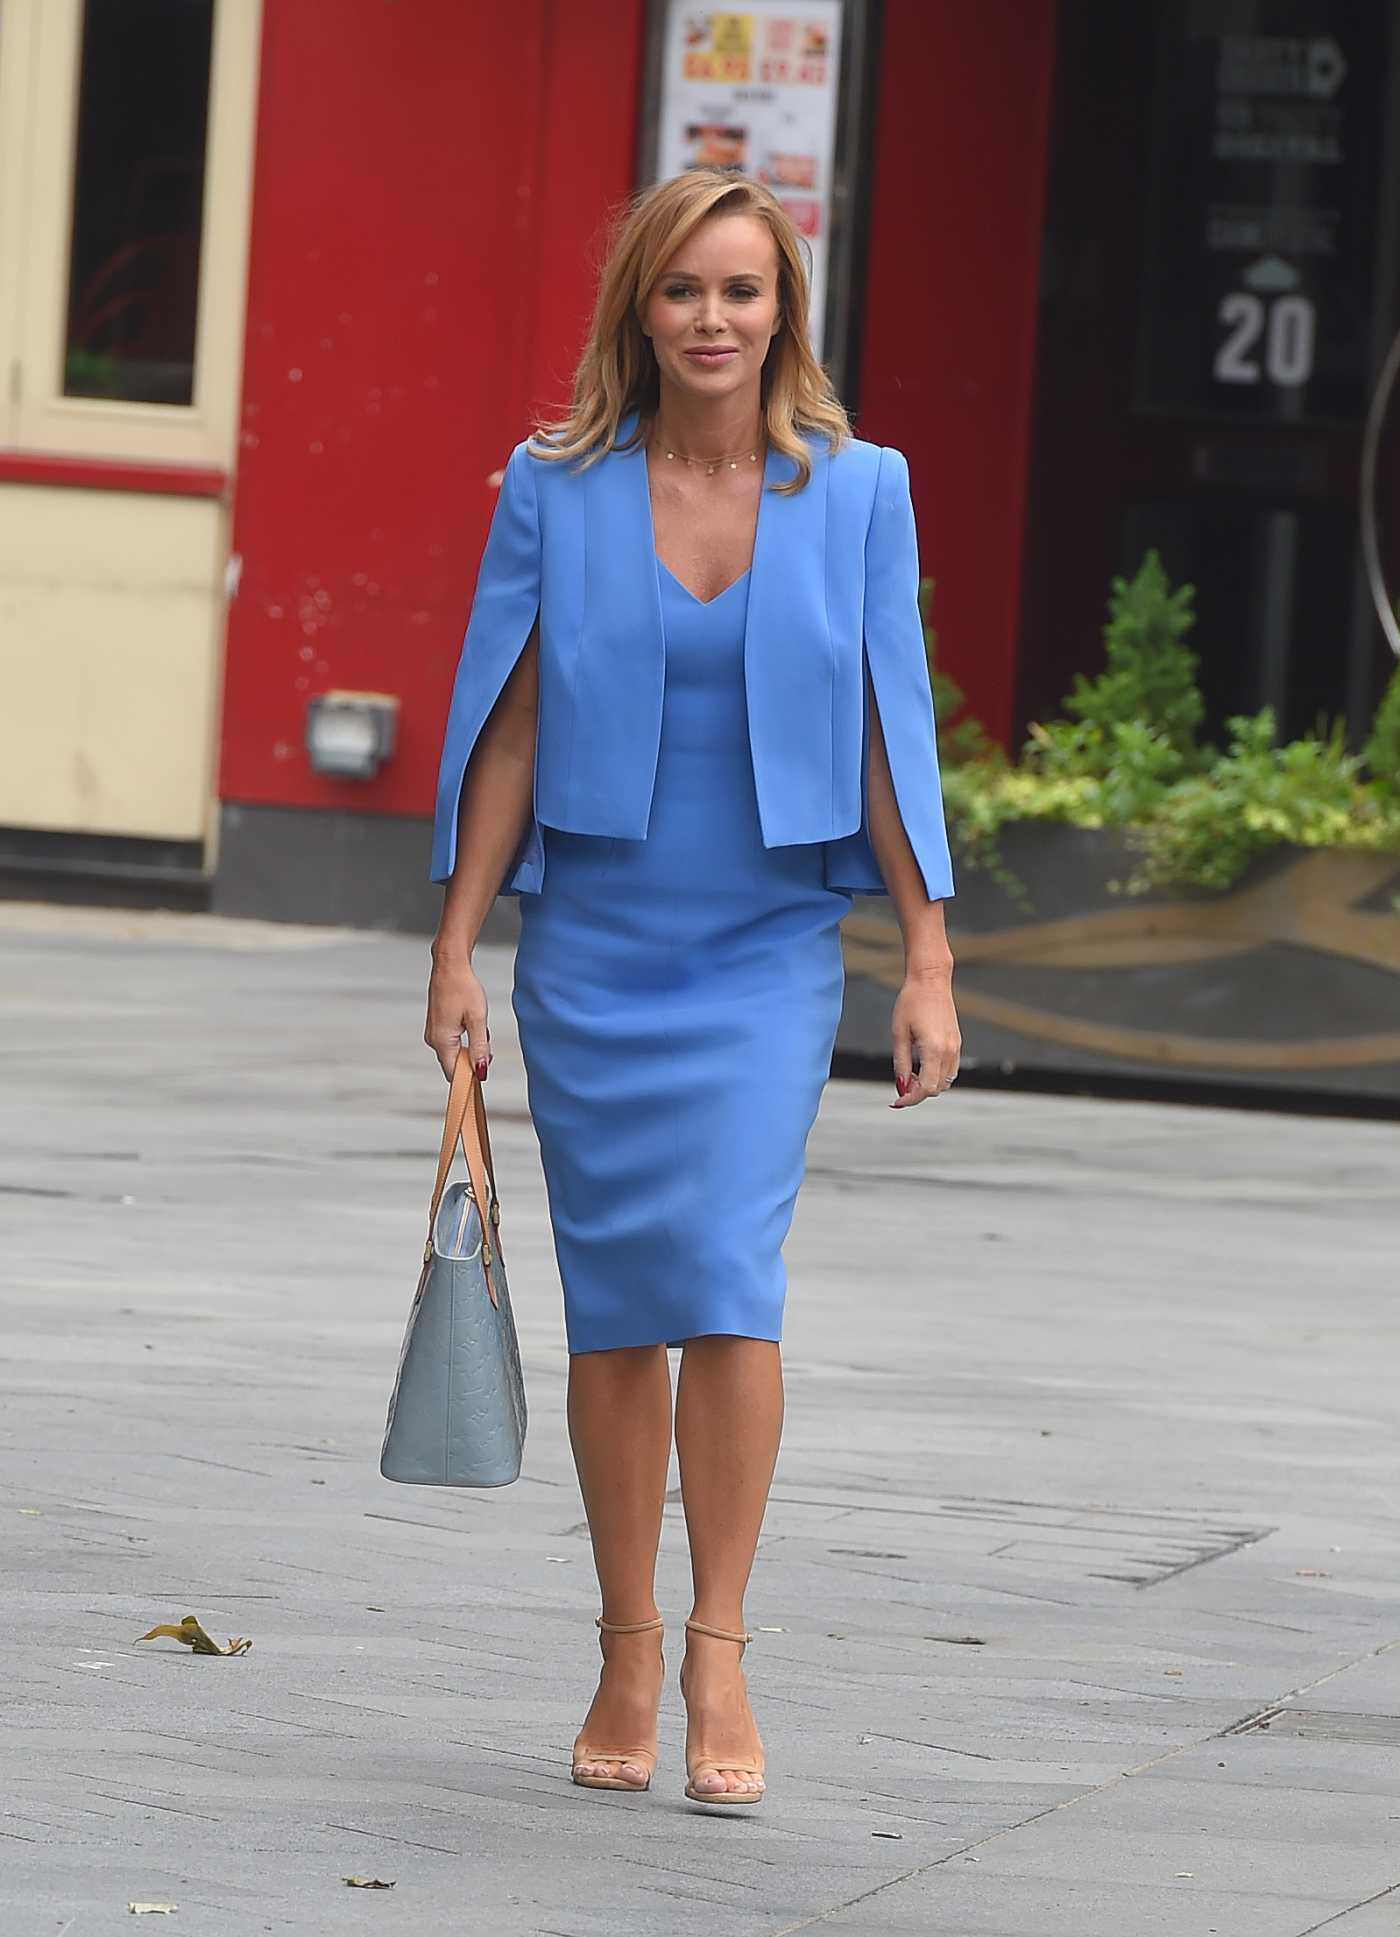 Amanda Holden in a Light Blue Dress Arrives at Global Radio Studios in London 06/10/2020